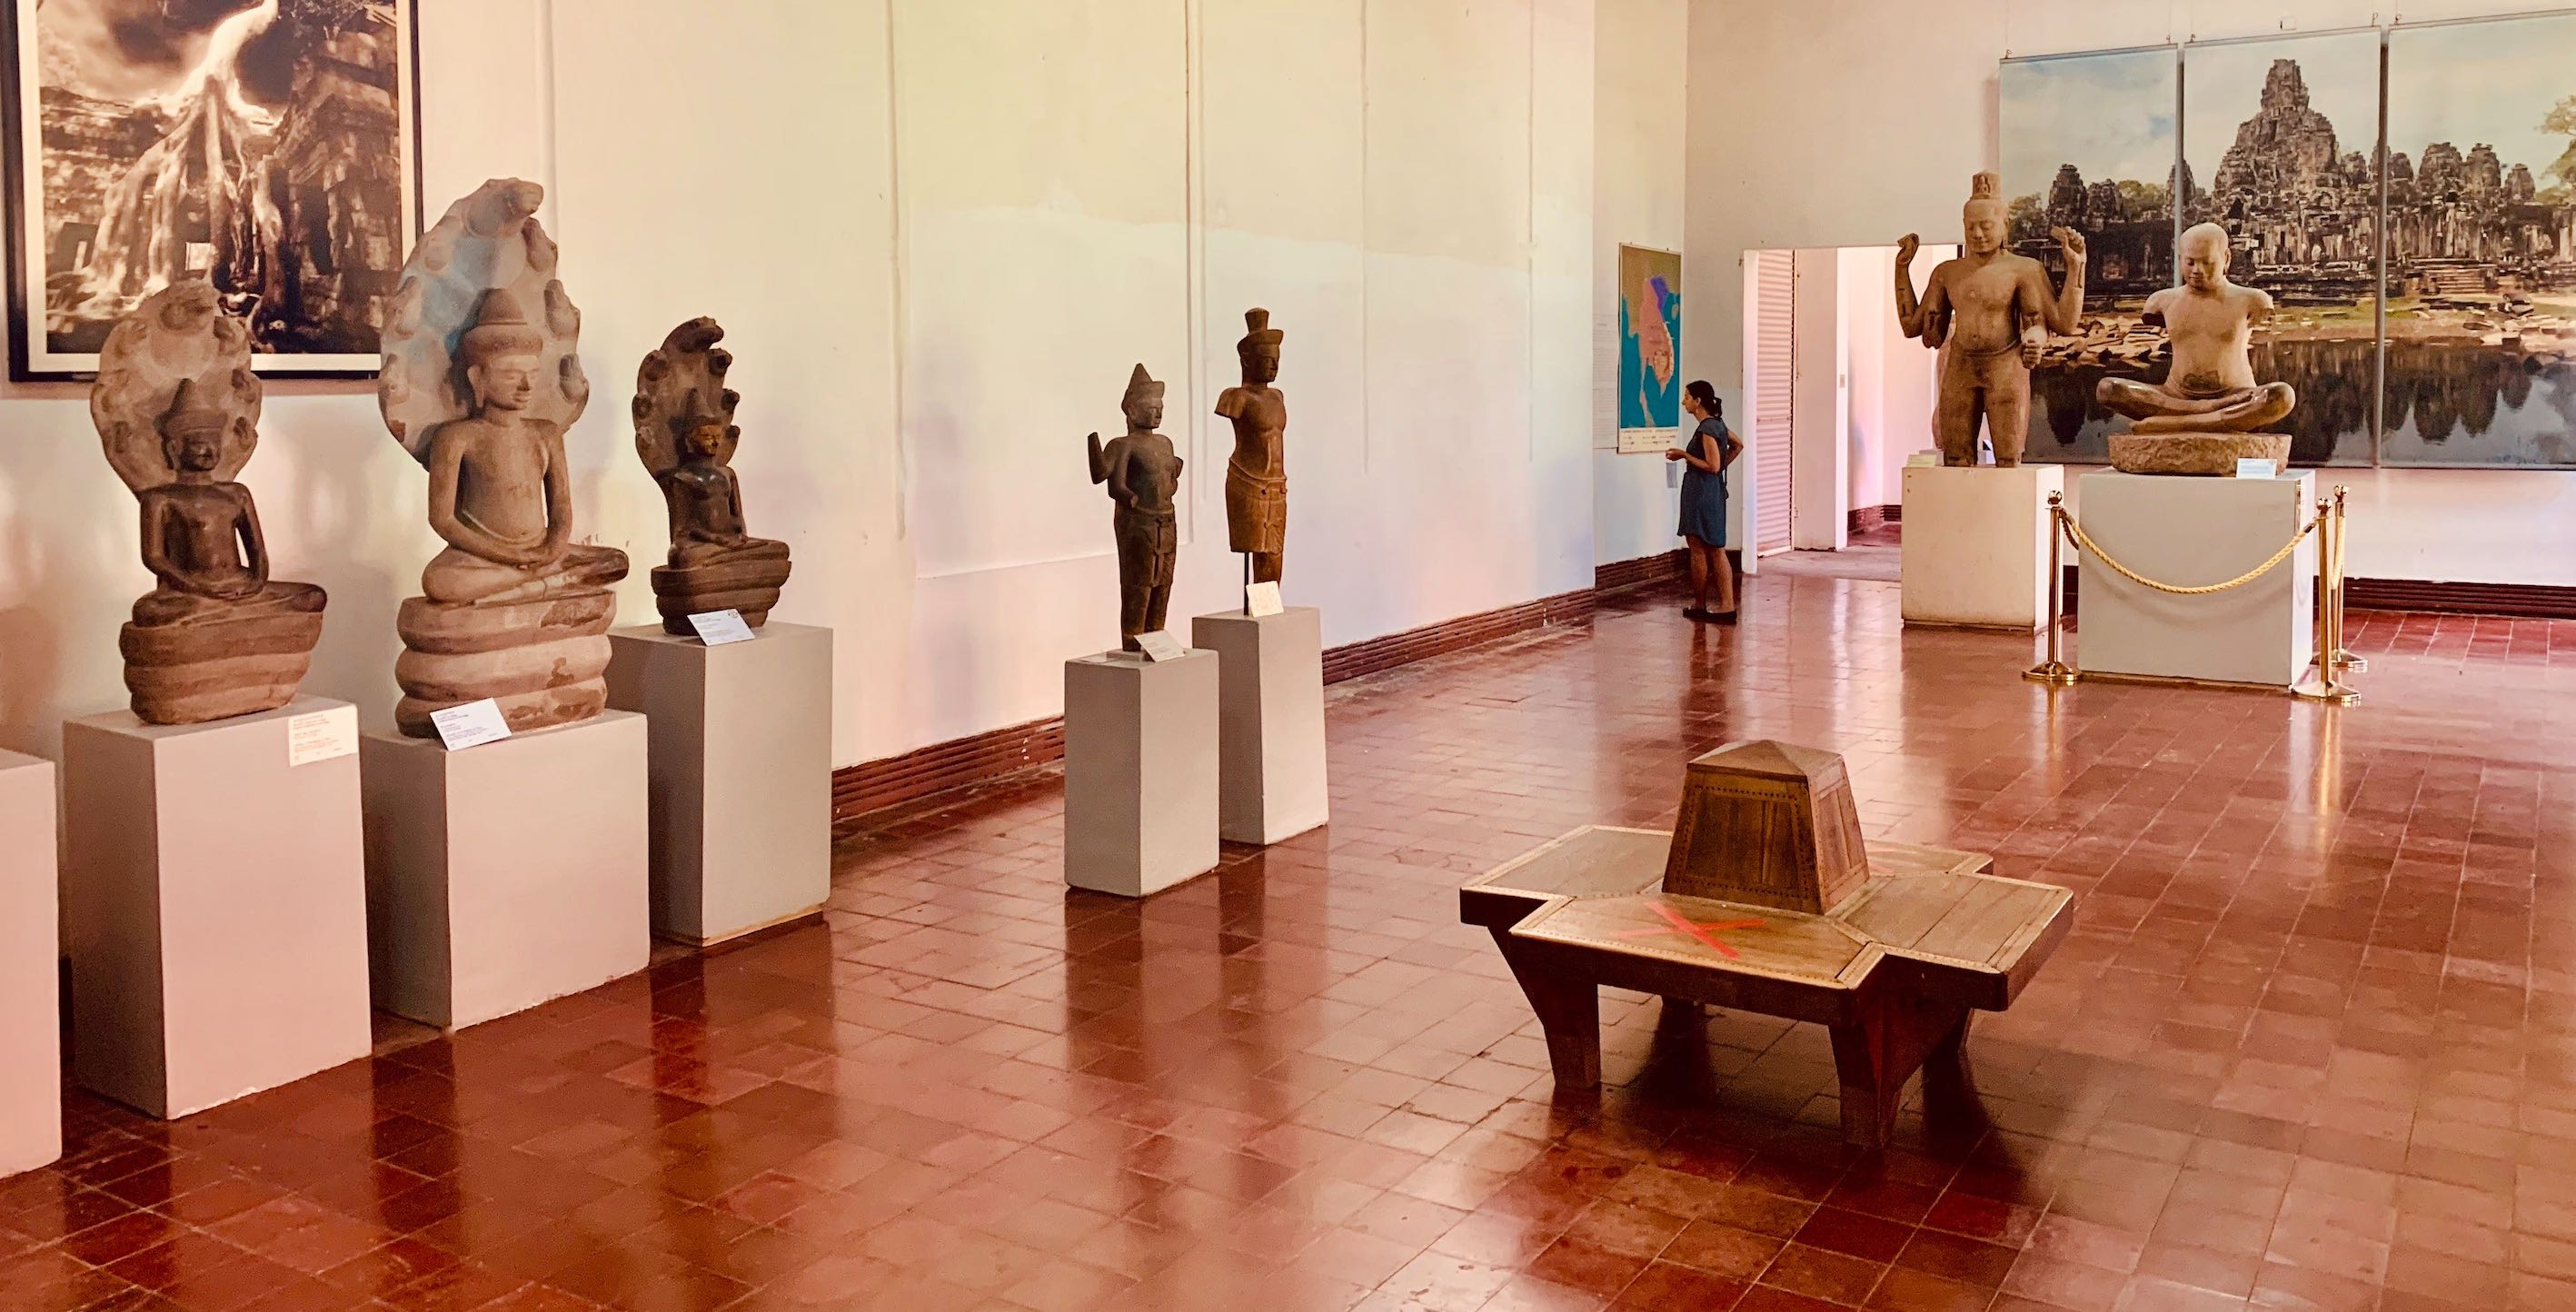 Exploring The National Museum of Cambodia